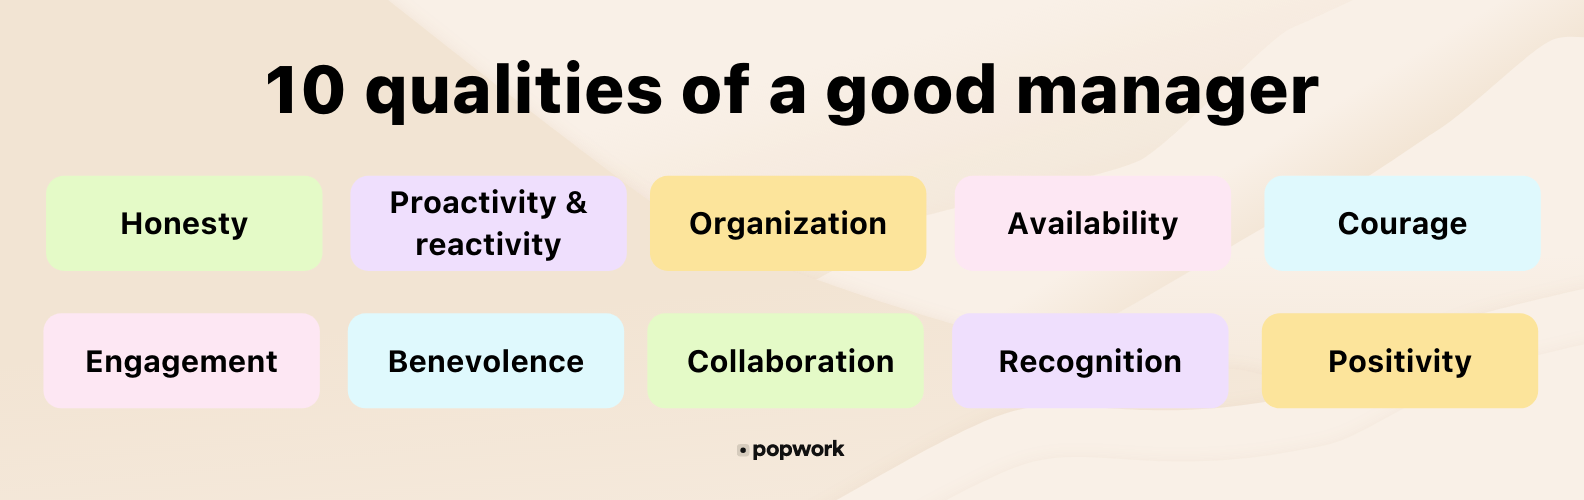 Ten qualities of a good manager: honesty, proactivity, organization, availability, courage, engagement, benevolence, collaboration, recongnition, positivity - Popwork